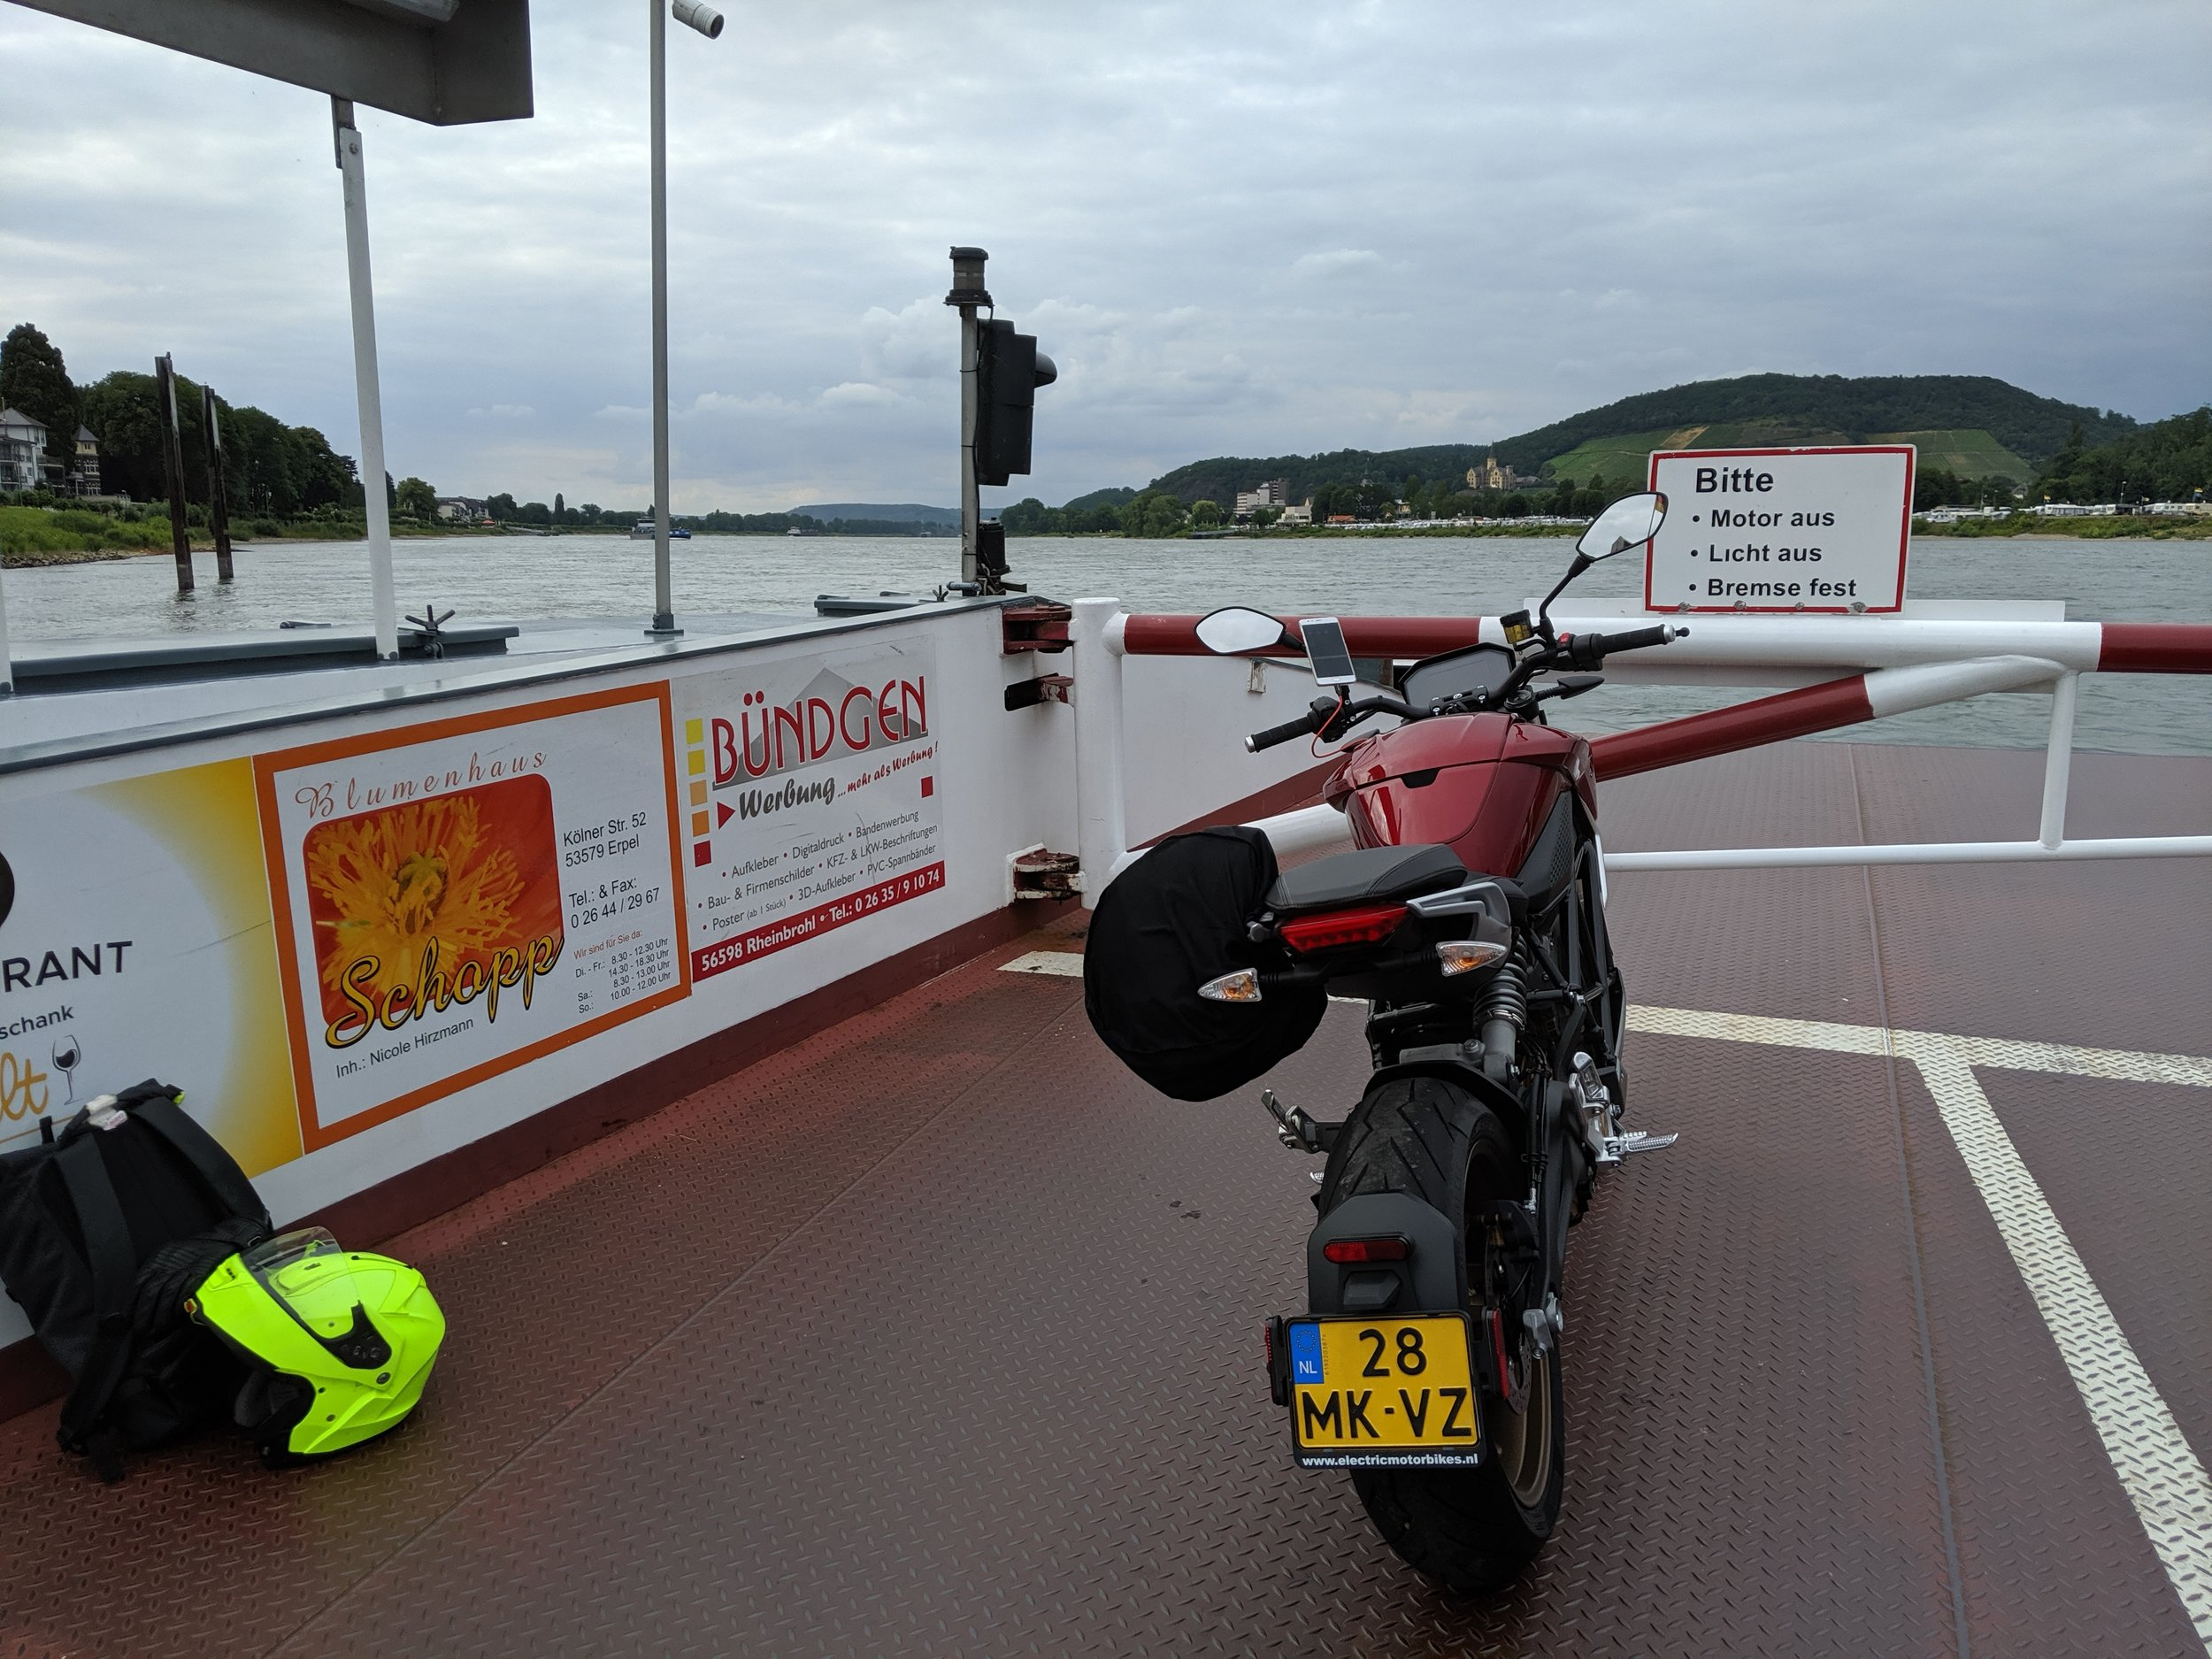 Crossing the Rhine by ferry, riding on the other side, more quiet roads, more fun!